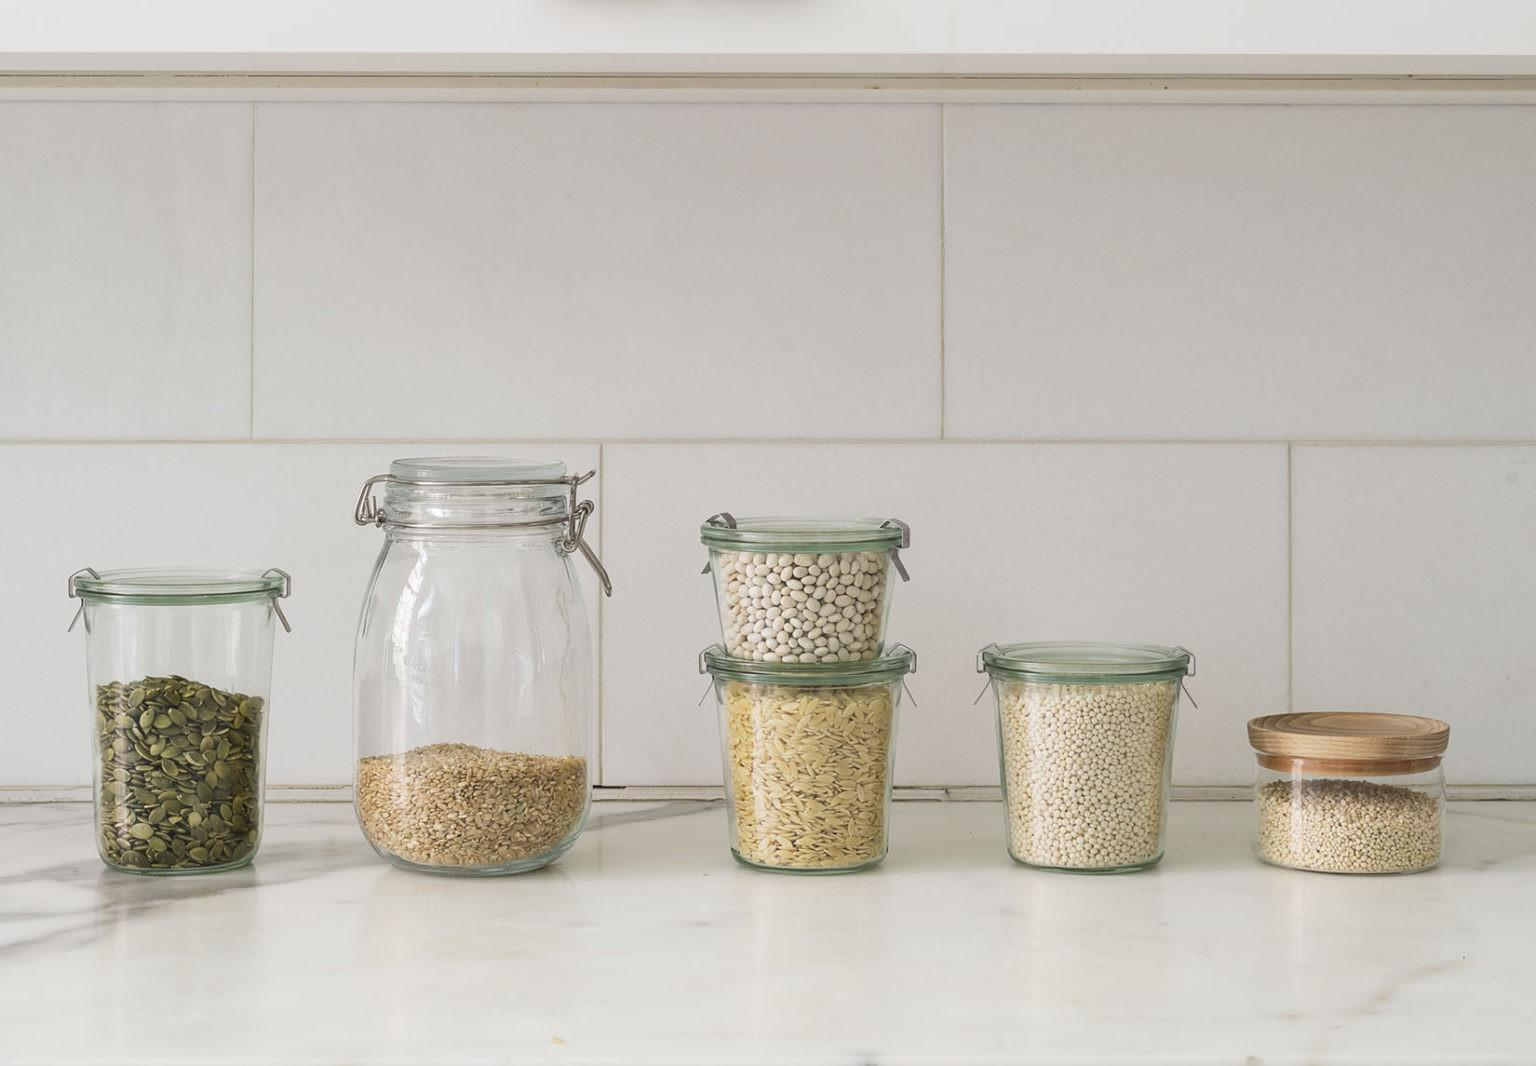 Organized Pantry Rules Decanting Dried Goods